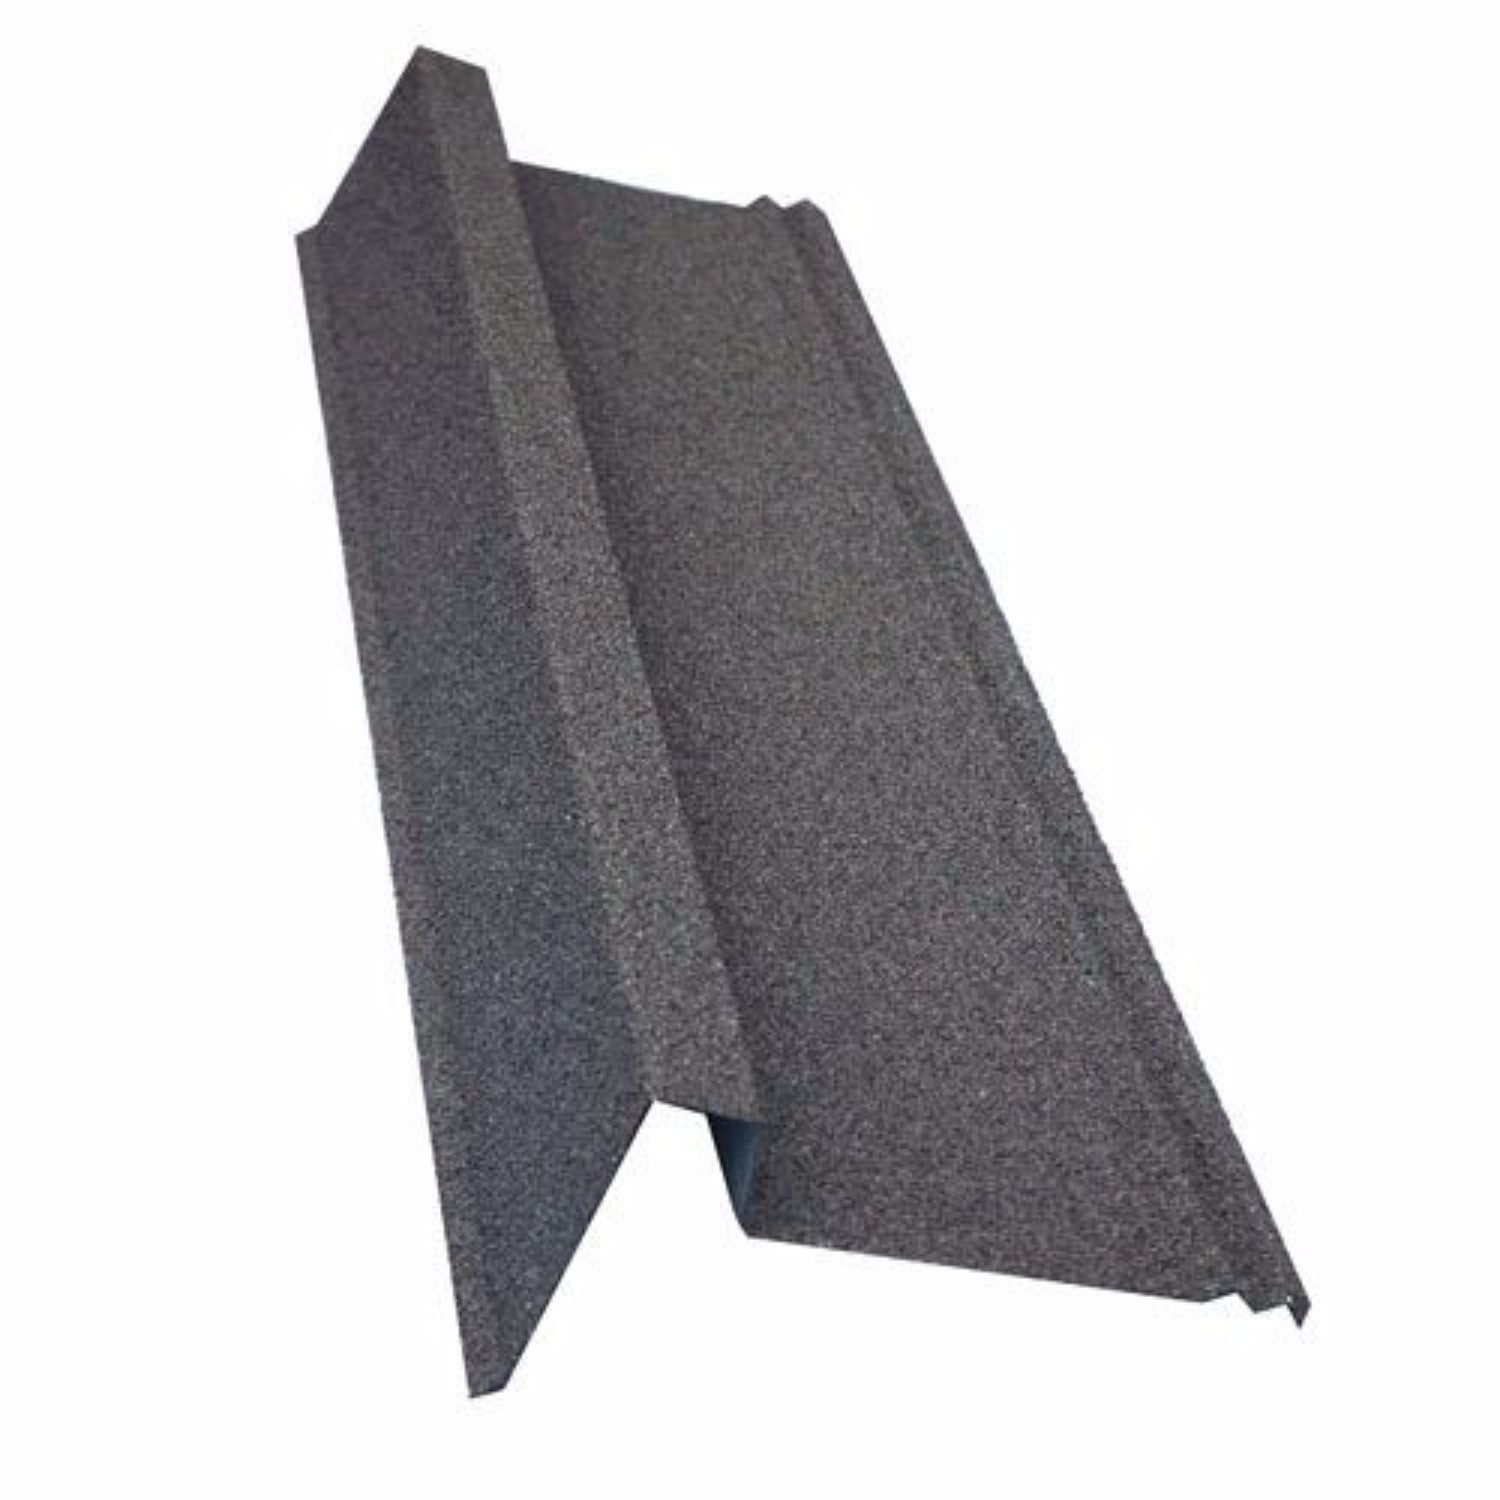 Corotile Lightweight Metal Roofing Sheet Barge Cover